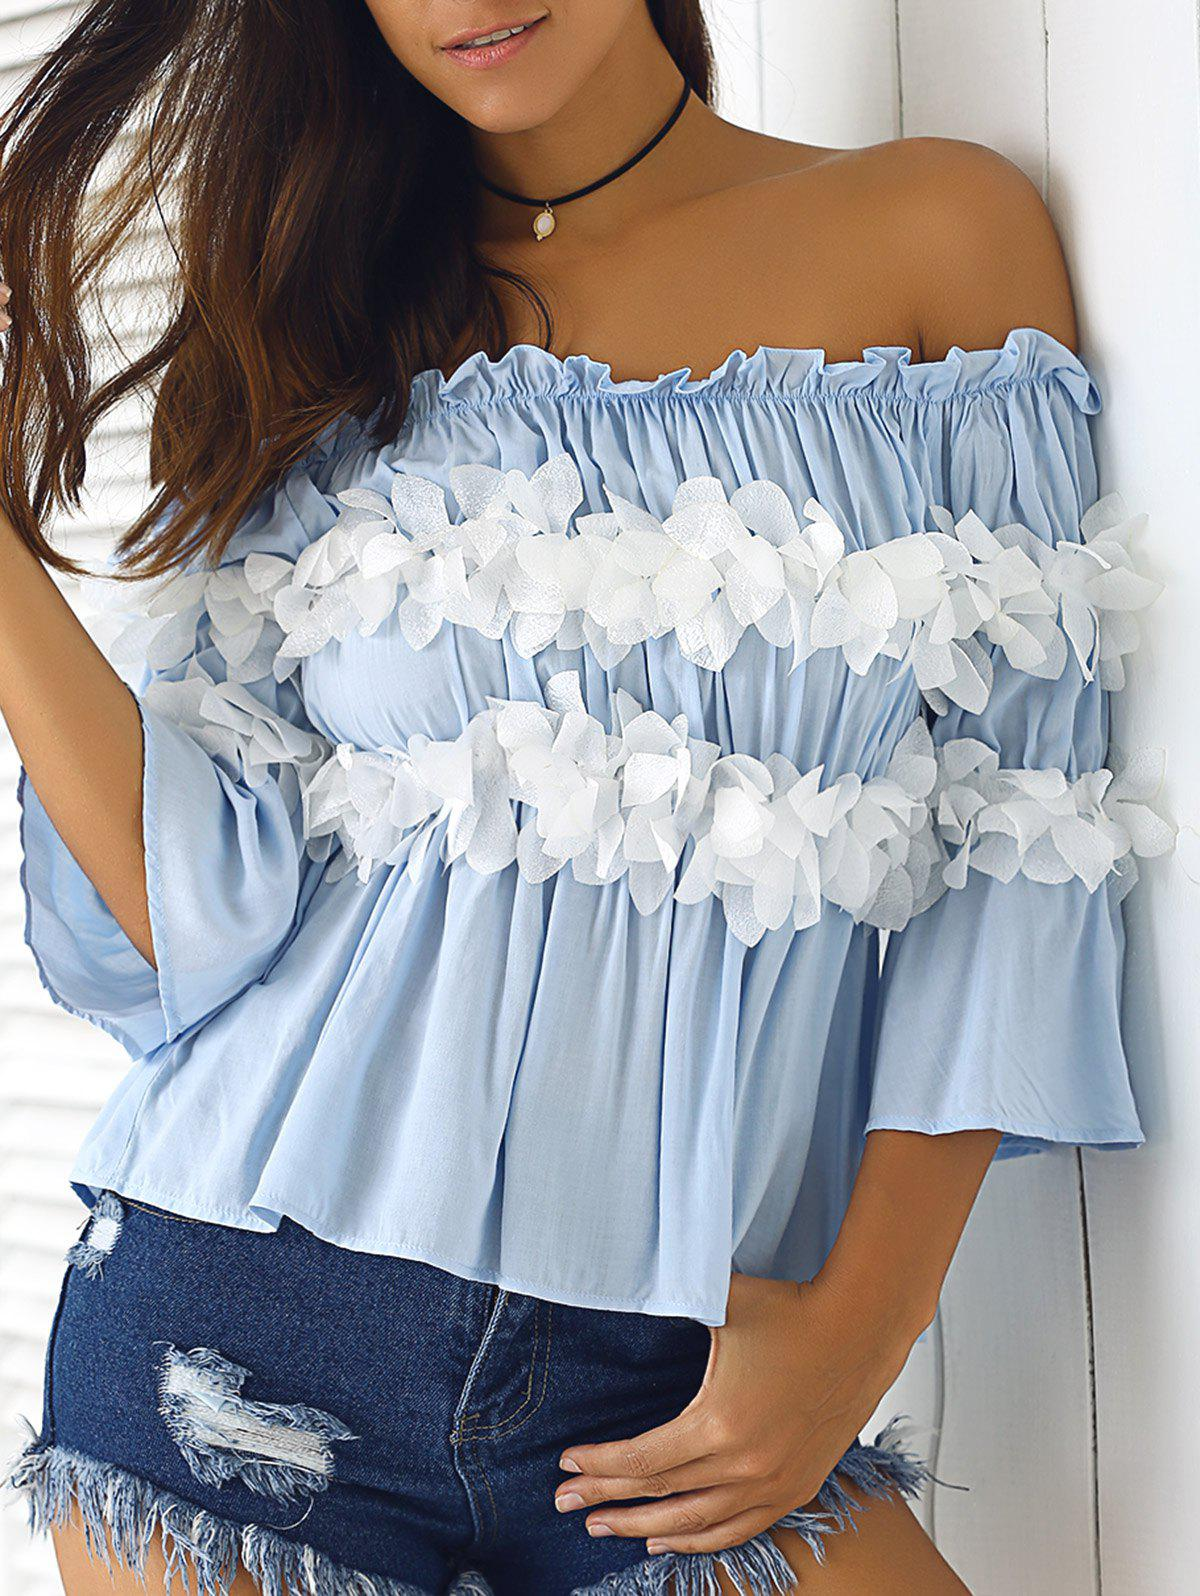 Graceful Women's  Off-The-Shoulder Flowers Bell Sleeves Blouse - LIGHT BLUE L